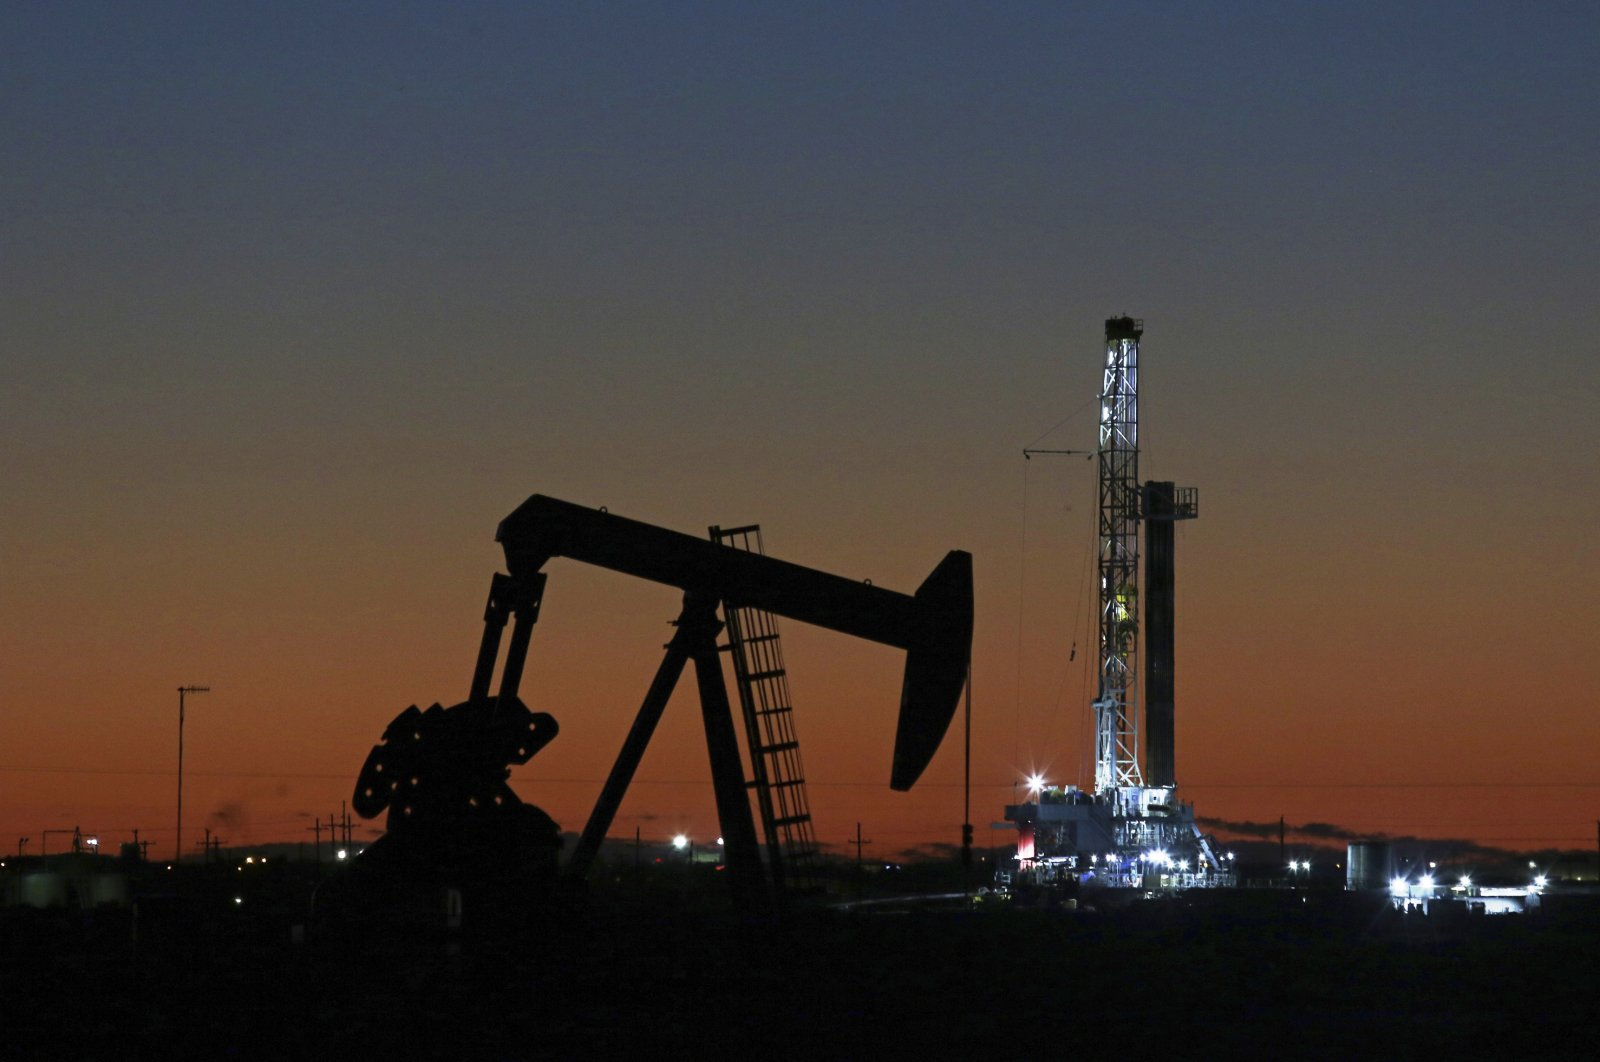 This file photo shows an oil rig and pump jack in Midland, Texas, Oct. 9, 2018. (AP Photo)